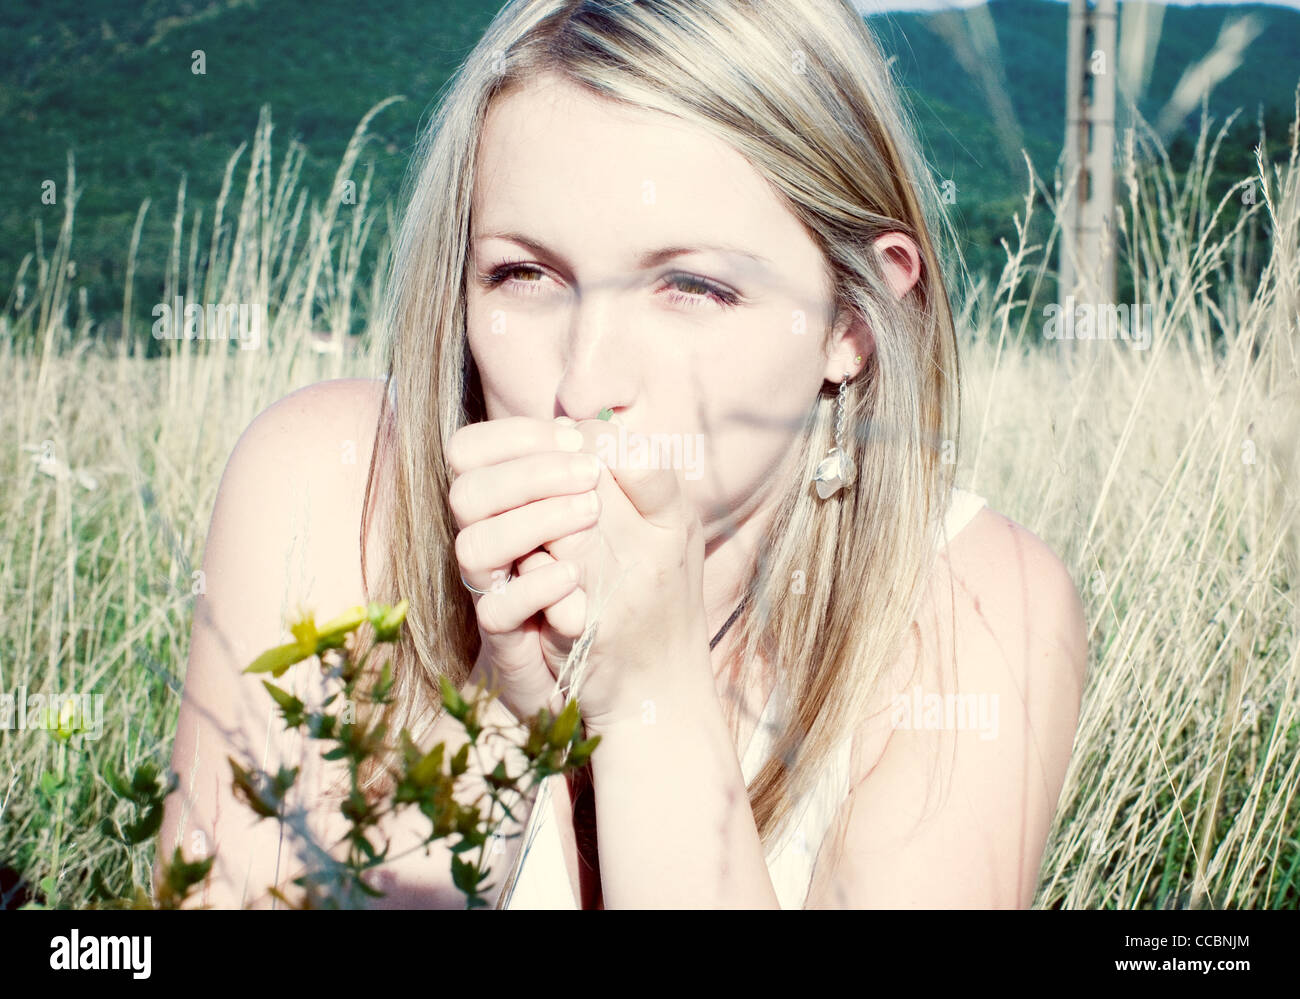 Woman blowing blade of grass Stock Photo